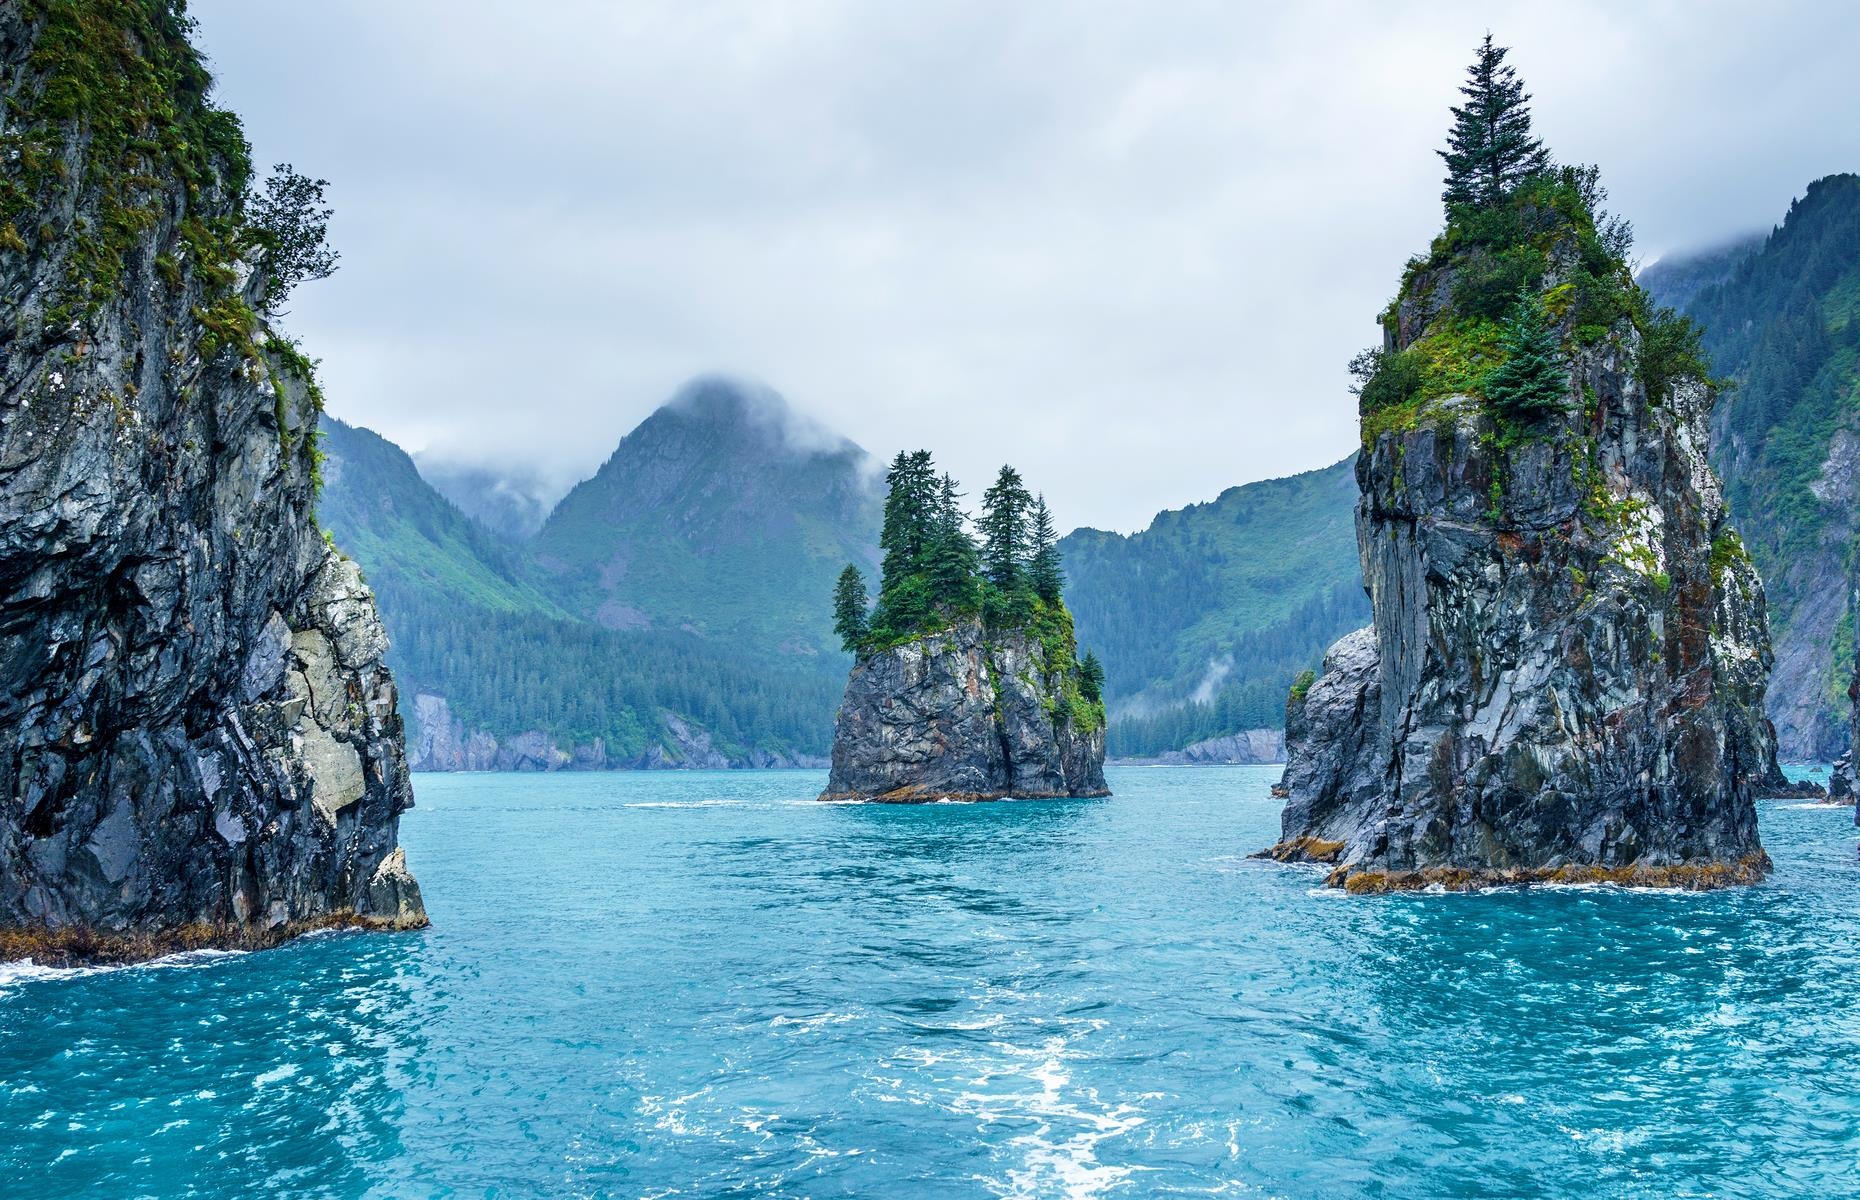 Slide 61 of 61: At a quick glance, this bay, with its blue waters and sea stacks, could be in Southeast Asia – instead it's actually the chillier waters of Alaska's Kenai Fjords National Park. The product of millennia of erosion, these sea stacks can be found peppered across the park, from Aialik Bay to the craggy Chiswell Islands. They're home to seabirds such as cormorants and puffins, plus the park's resident bats. The best way to take them in is from a kayak on the water. Jaw-dropping photos of America from above